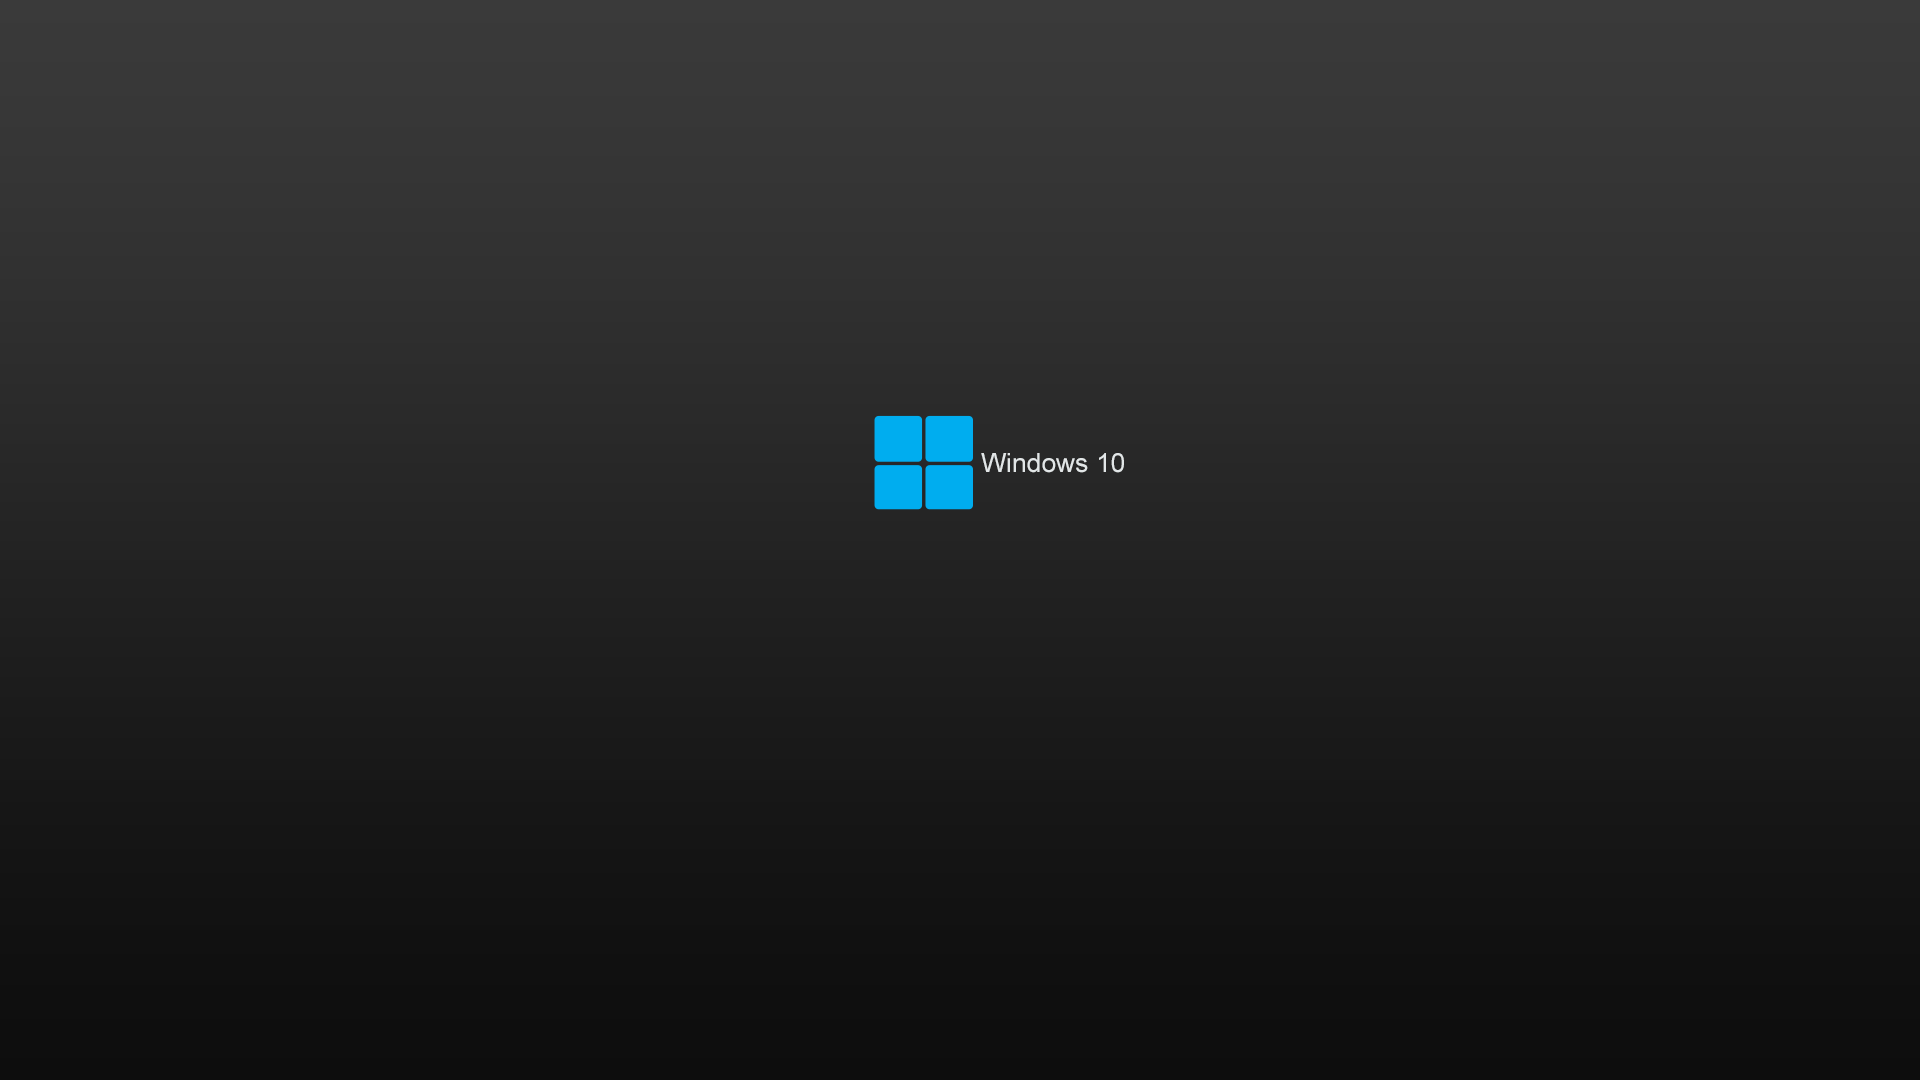 Dark Windows 10 Wallpaper Full HD Pictures 1920x1080